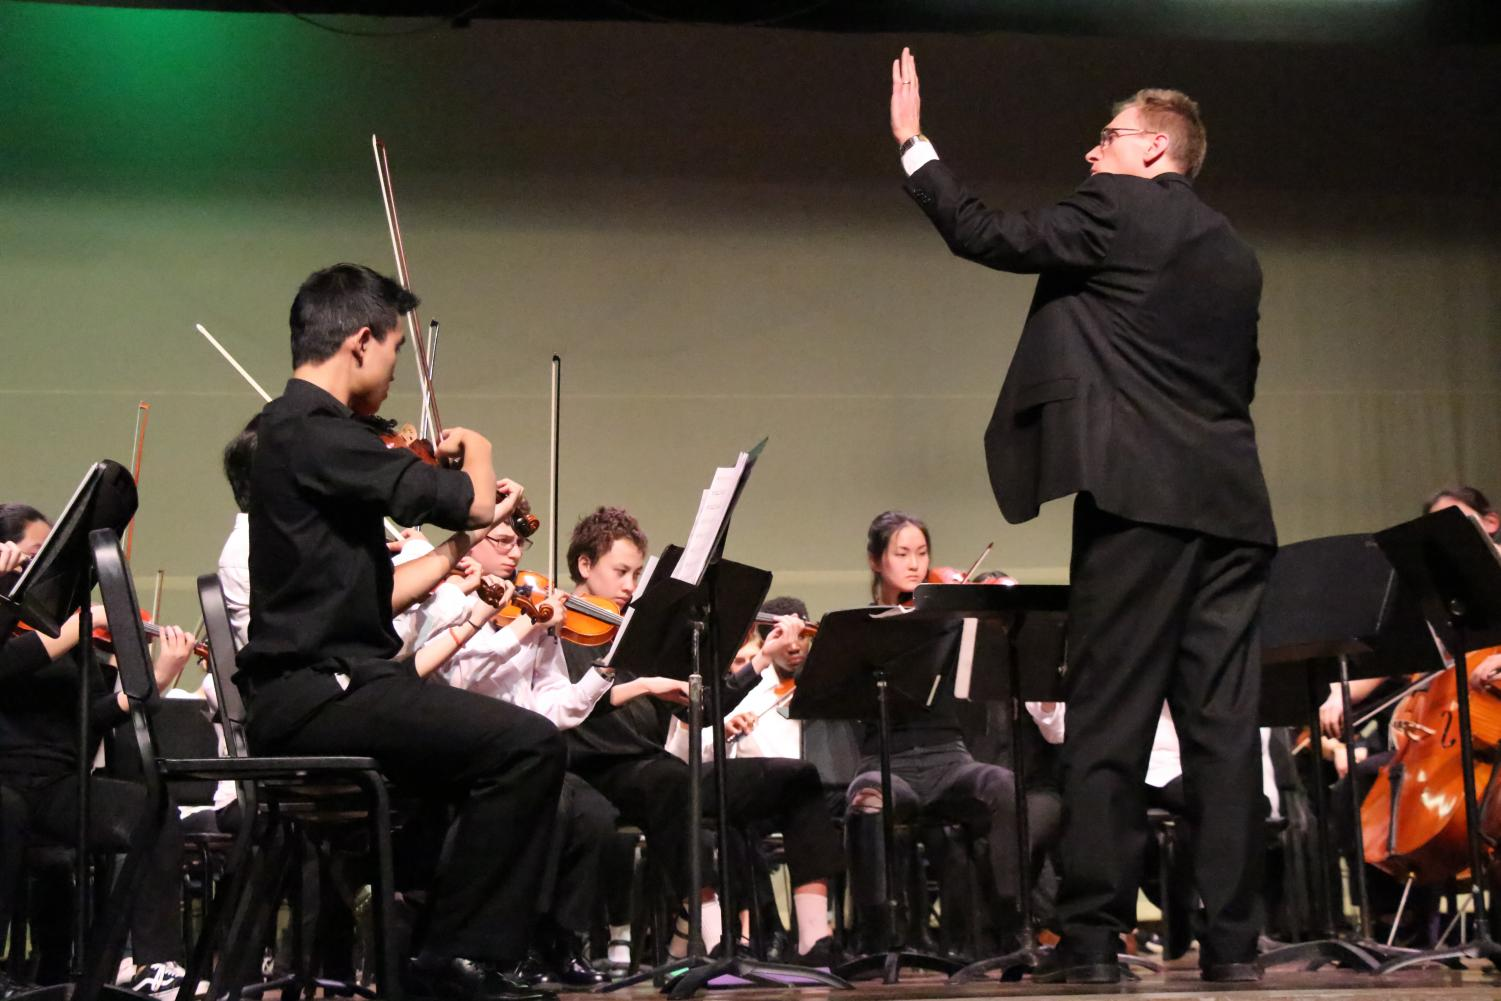 John Ferguson conducts the combined orchestras for